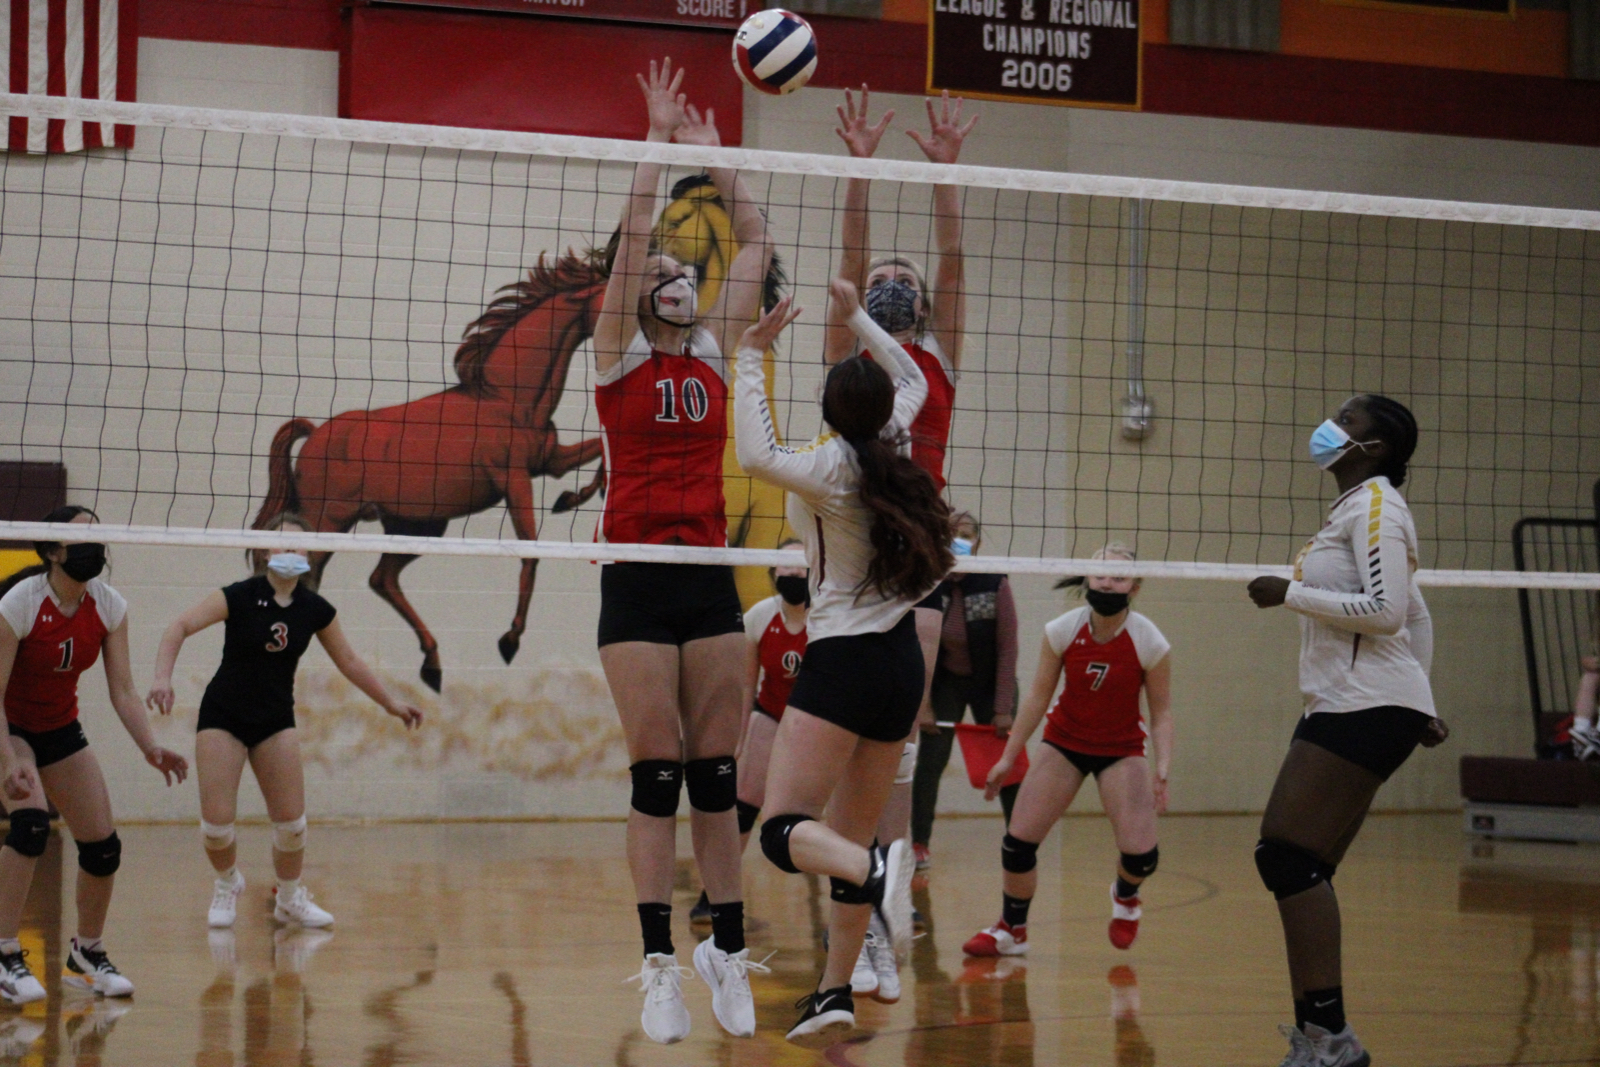 Photo Gallery: JV Volleyball vs. Elizabeth